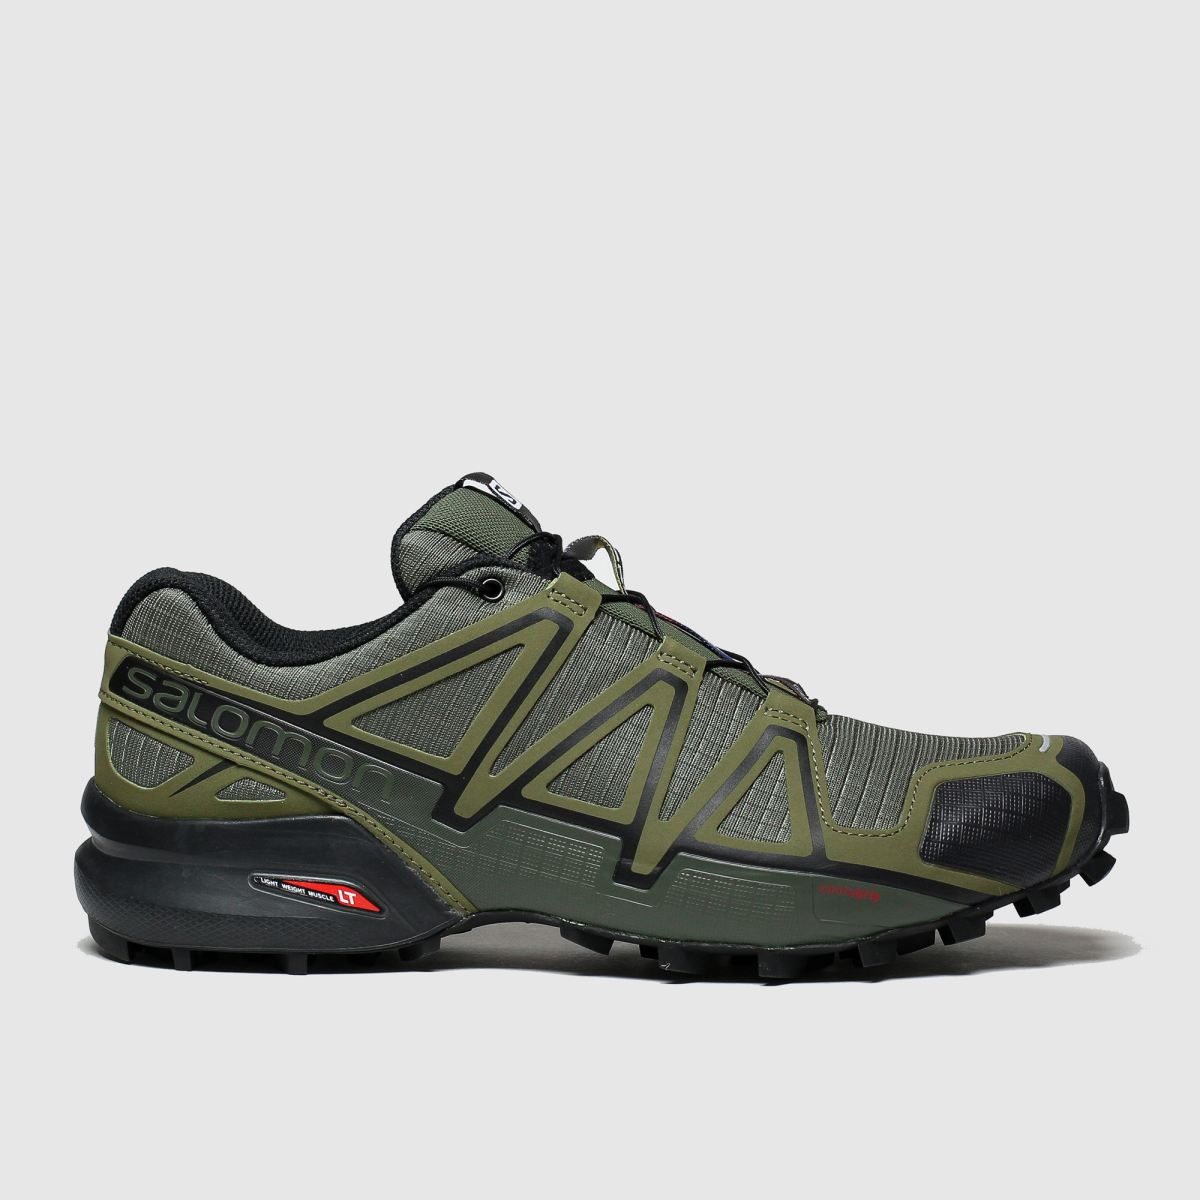 Salomon Salomon Khaki Speedcross 4 Trainers